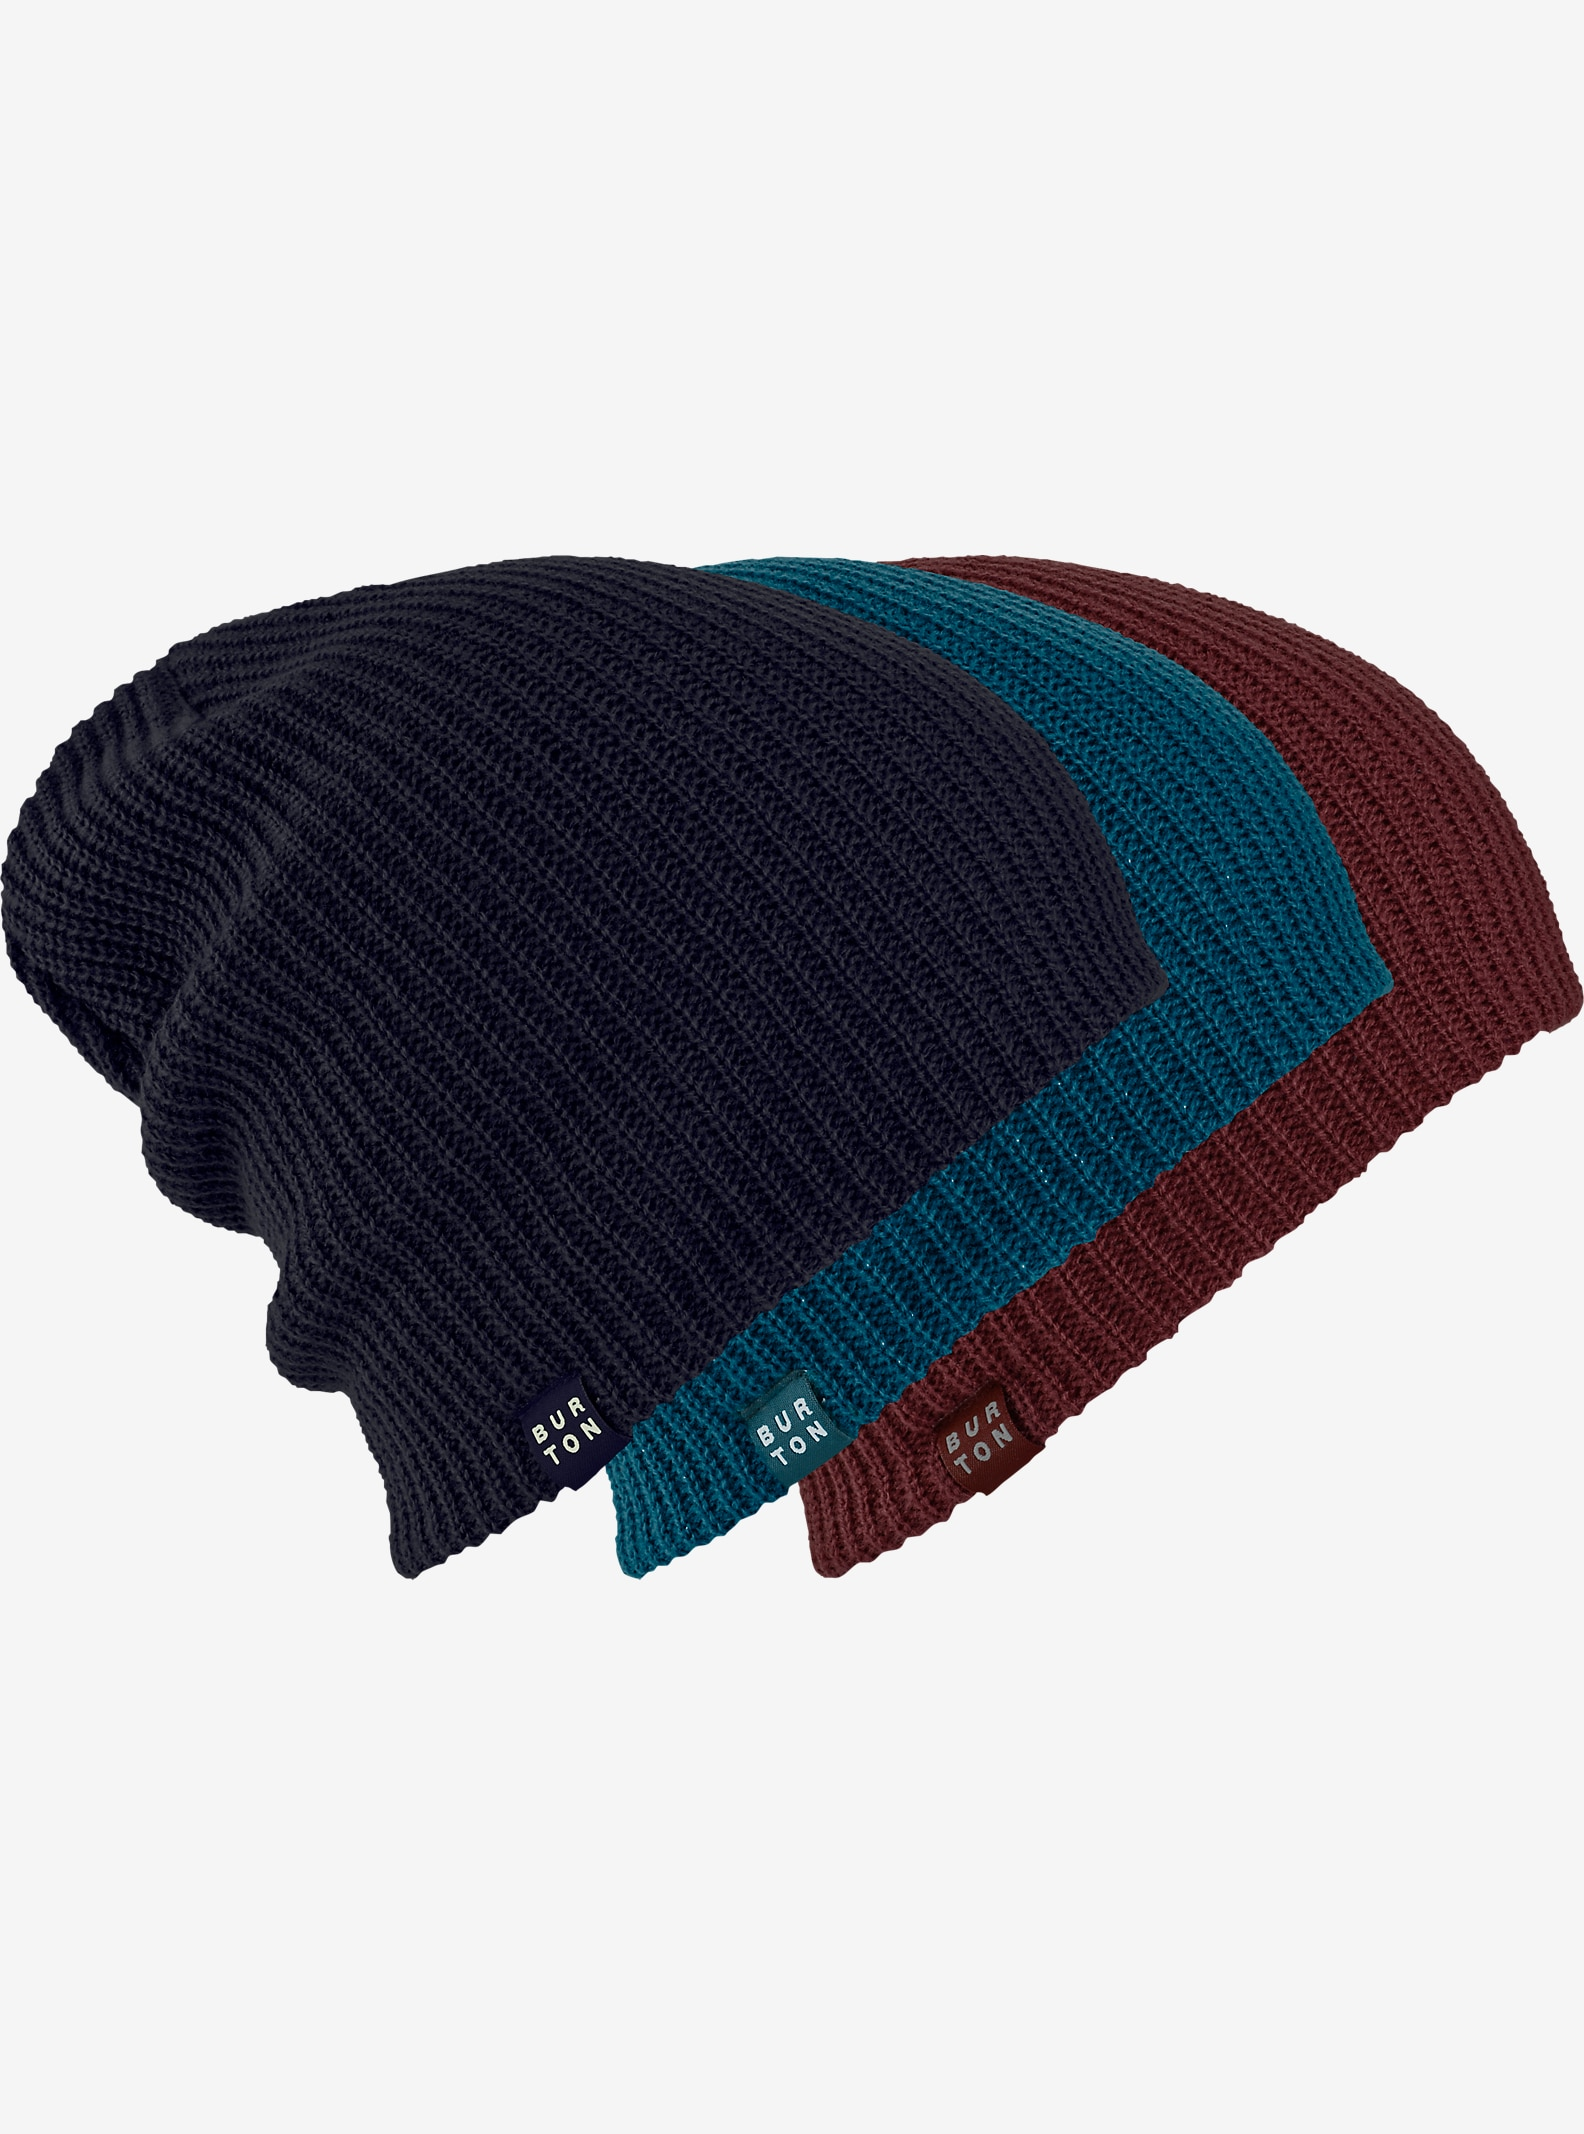 Burton DND Beanie 3-Pack shown in Mood Indigo / Jade / Sangria